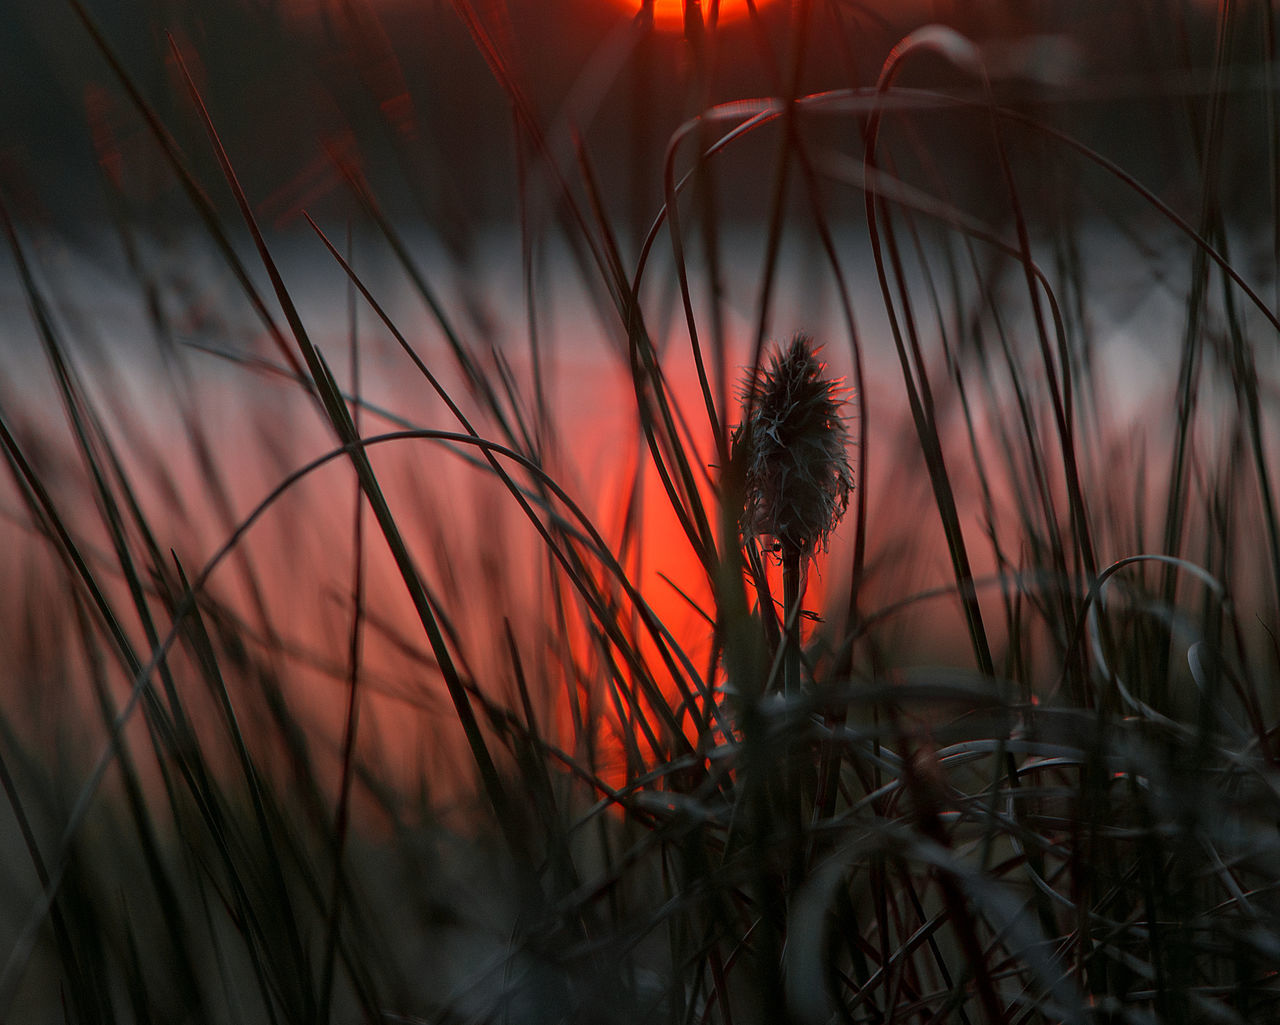 red sunset reflection in lake water Abstract Art Background Beauty In Nature Close-up Concepts Exceptional Photographs Grass Growth Lake Macro Art Melancholy Miscellaneous  Nature Nostalgia Other Outdoors Photo Art Plant Red Reflection Sun Sunrise Sunset Sunset Collection Water The Great Outdoors - 2017 EyeEm Awards